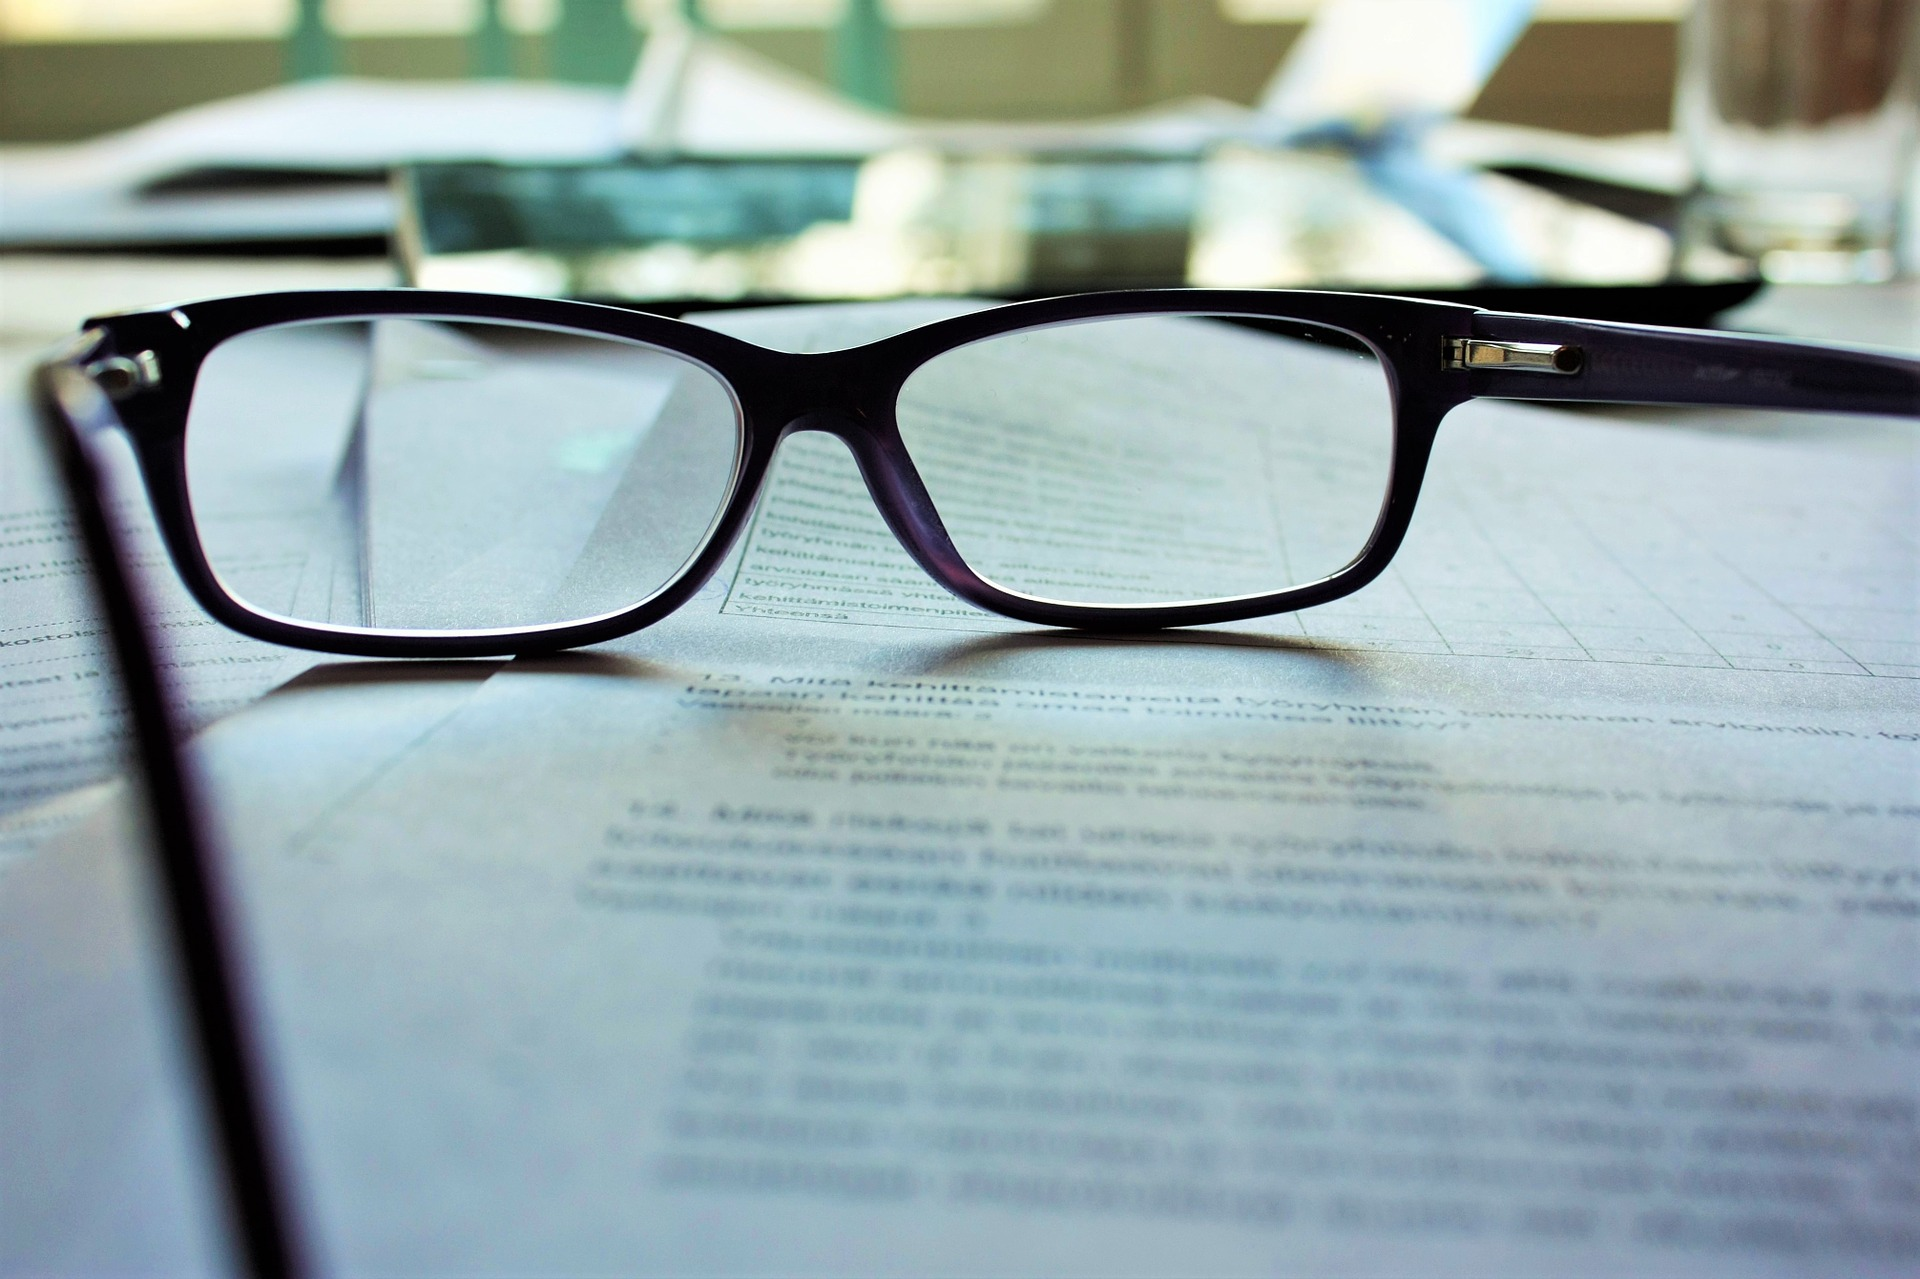 Read through those materials to educate yourself as to potential concerns. Discuss those matters with an attorney to help you figure out how those concerns apply to and impact your particular matter. -